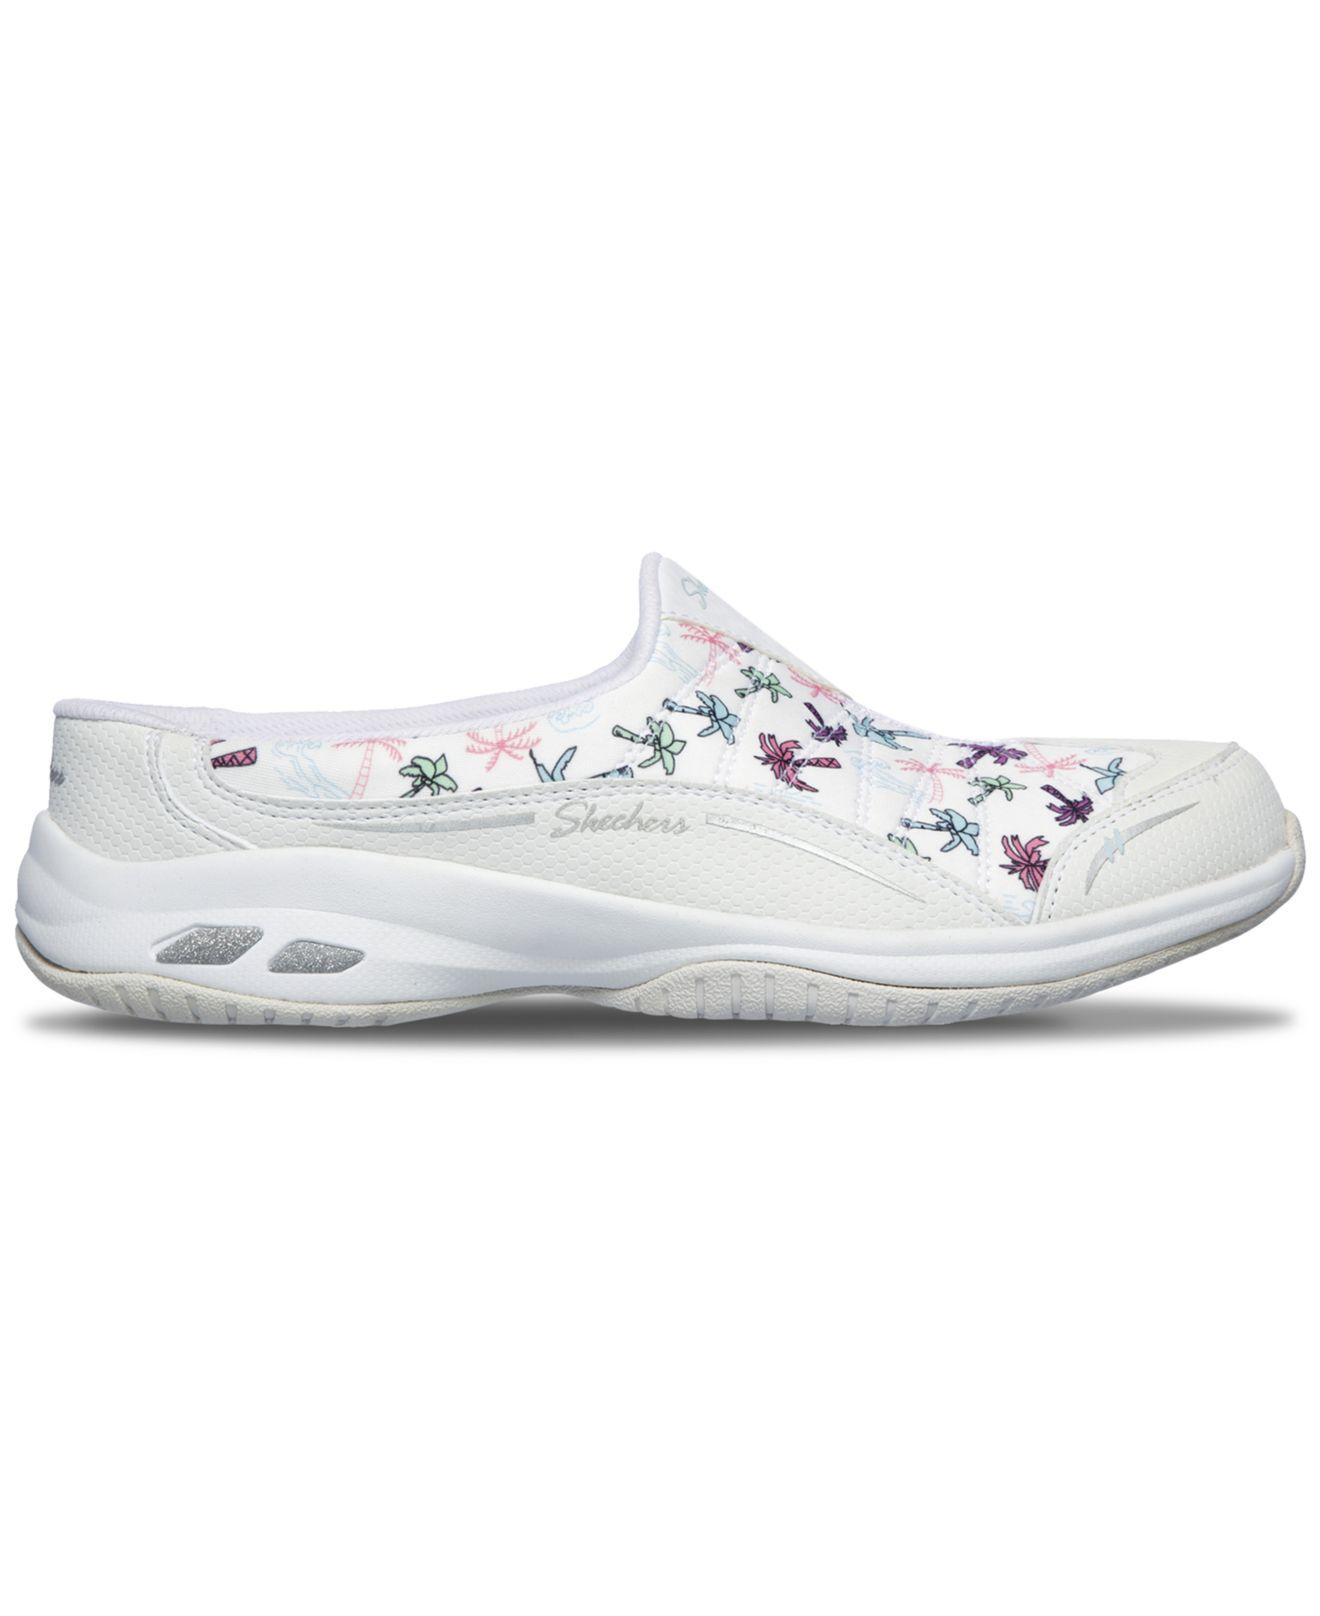 99748447fcfd Lyst - Skechers Relaxed Fit  Commute Time - Palm Tree Holiday Walking  Sneakers From Finish Line in White